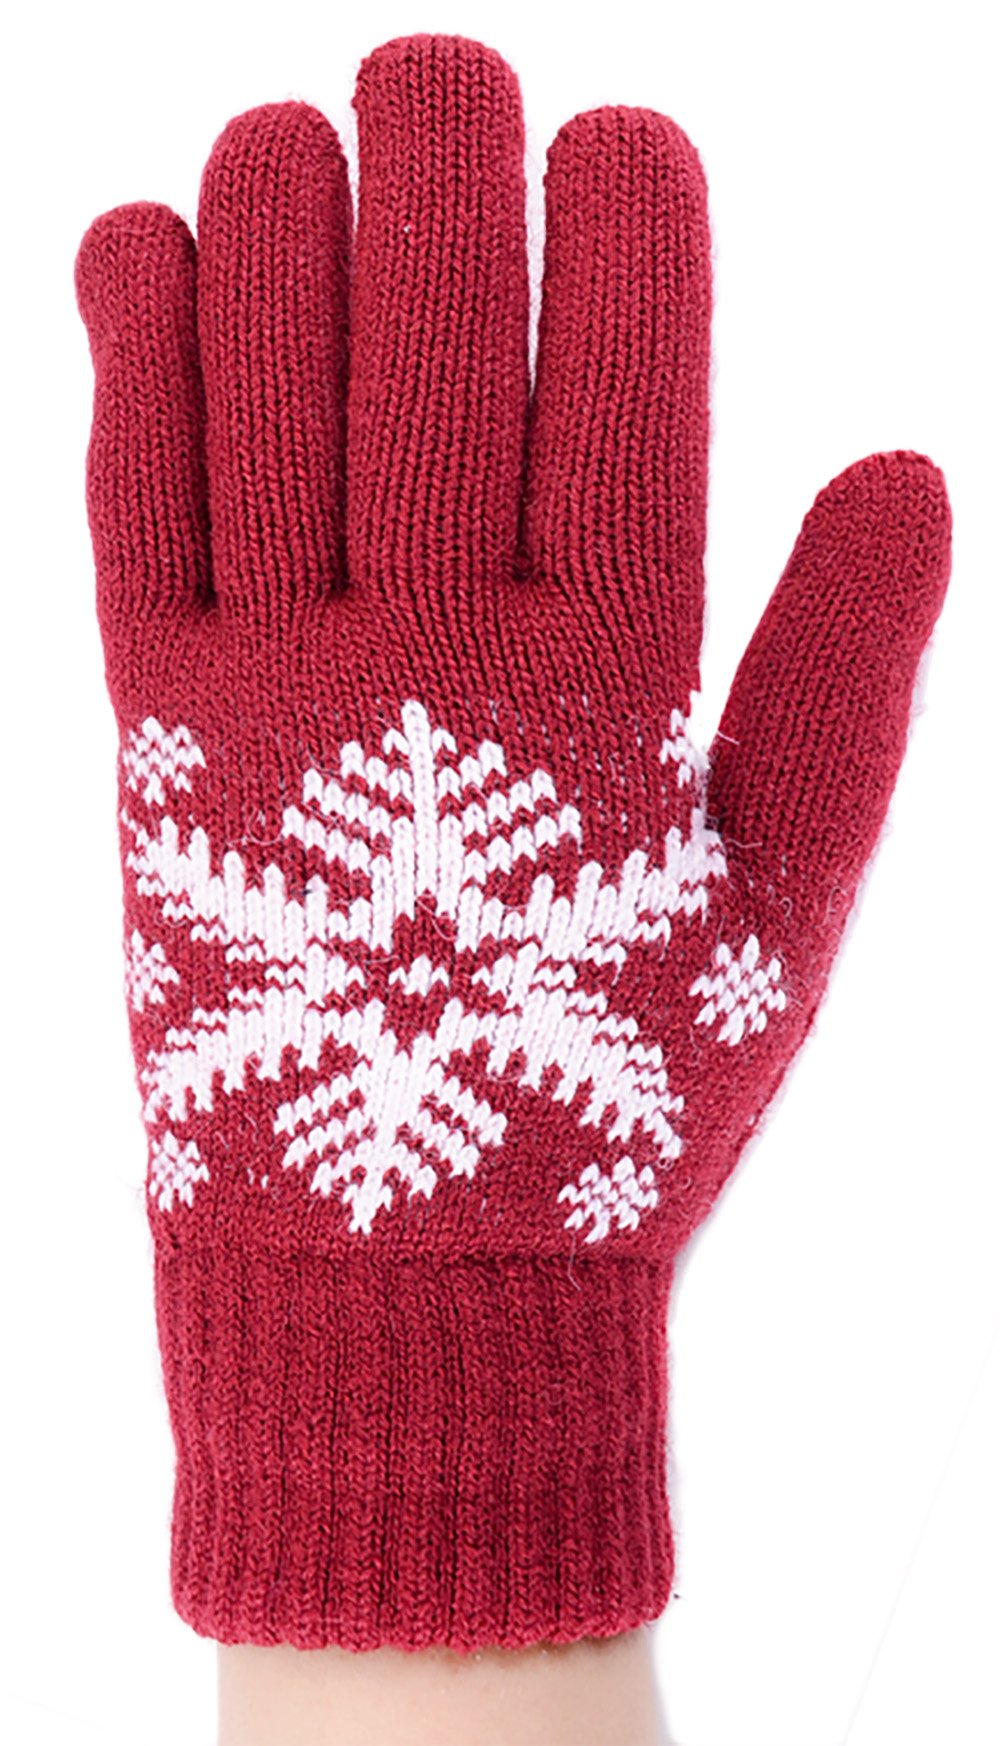 BYOS Womens Winter Ultra Warm Plush Fleece Lined Knit Gloves With Various Pattern Design (Red Snowflake)